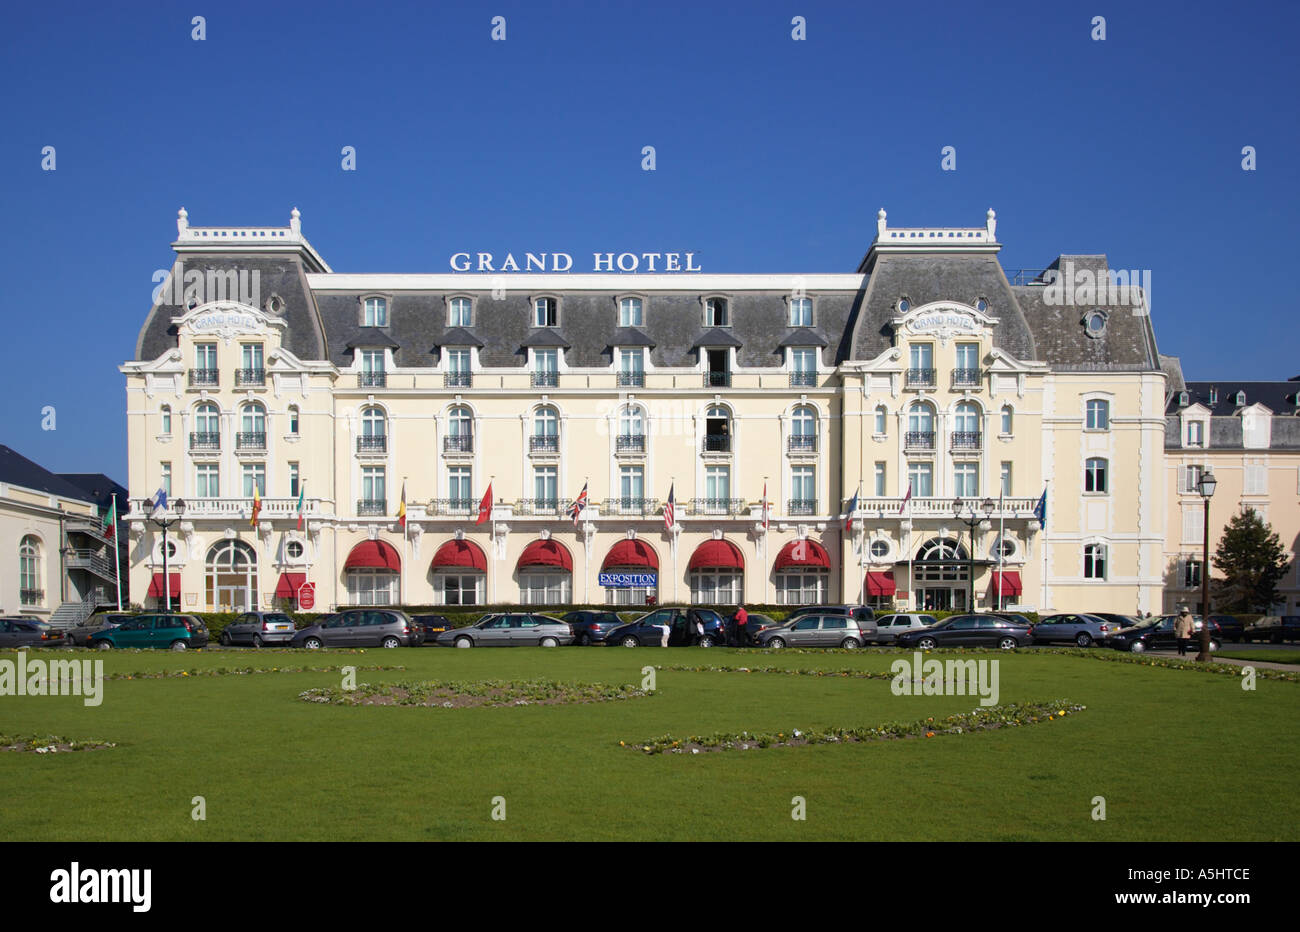 grand hotel cabourg normandy france from jardins du casino stock photo royalty free image. Black Bedroom Furniture Sets. Home Design Ideas